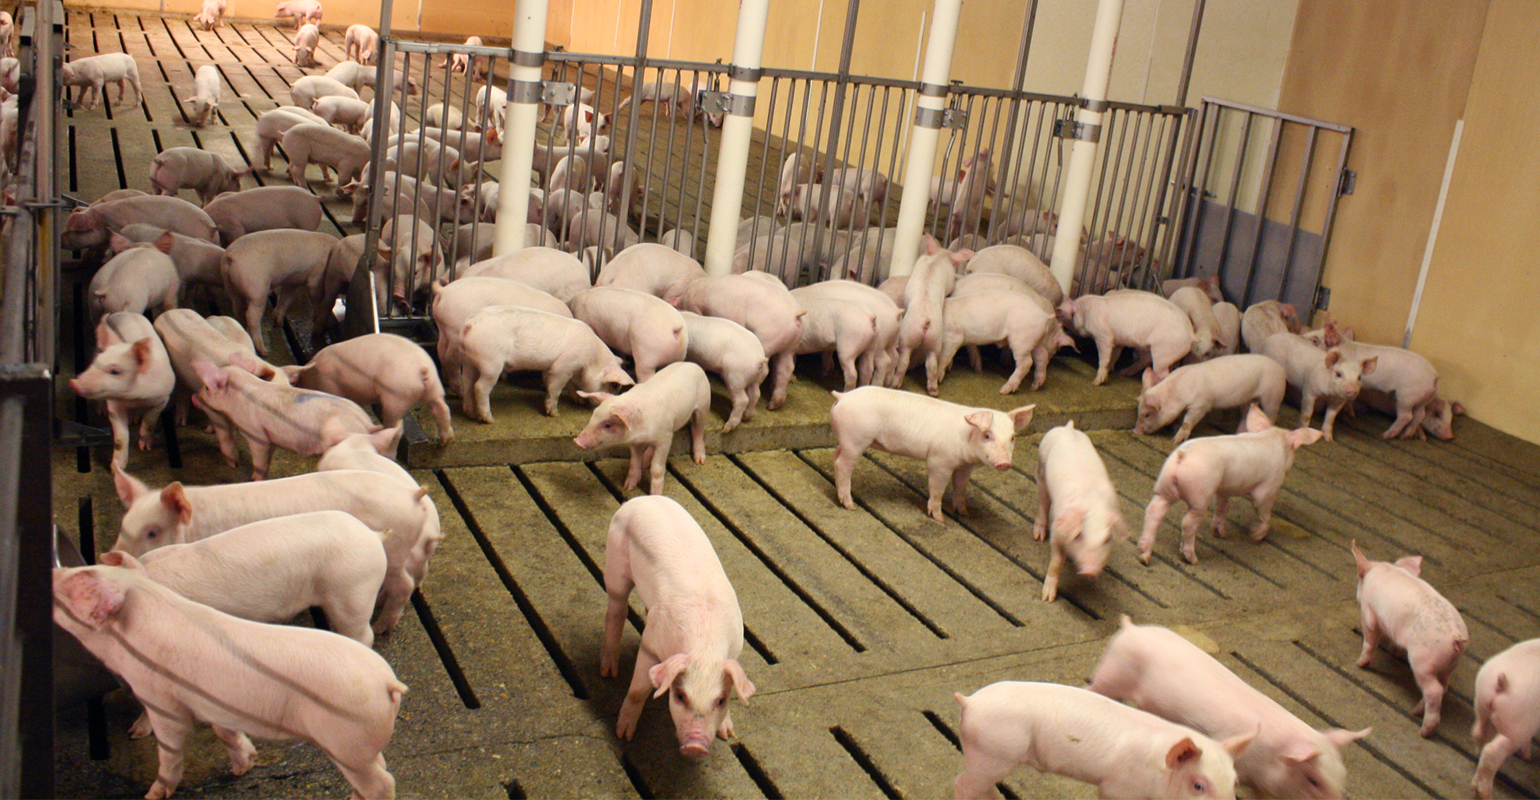 pigs penned indoors